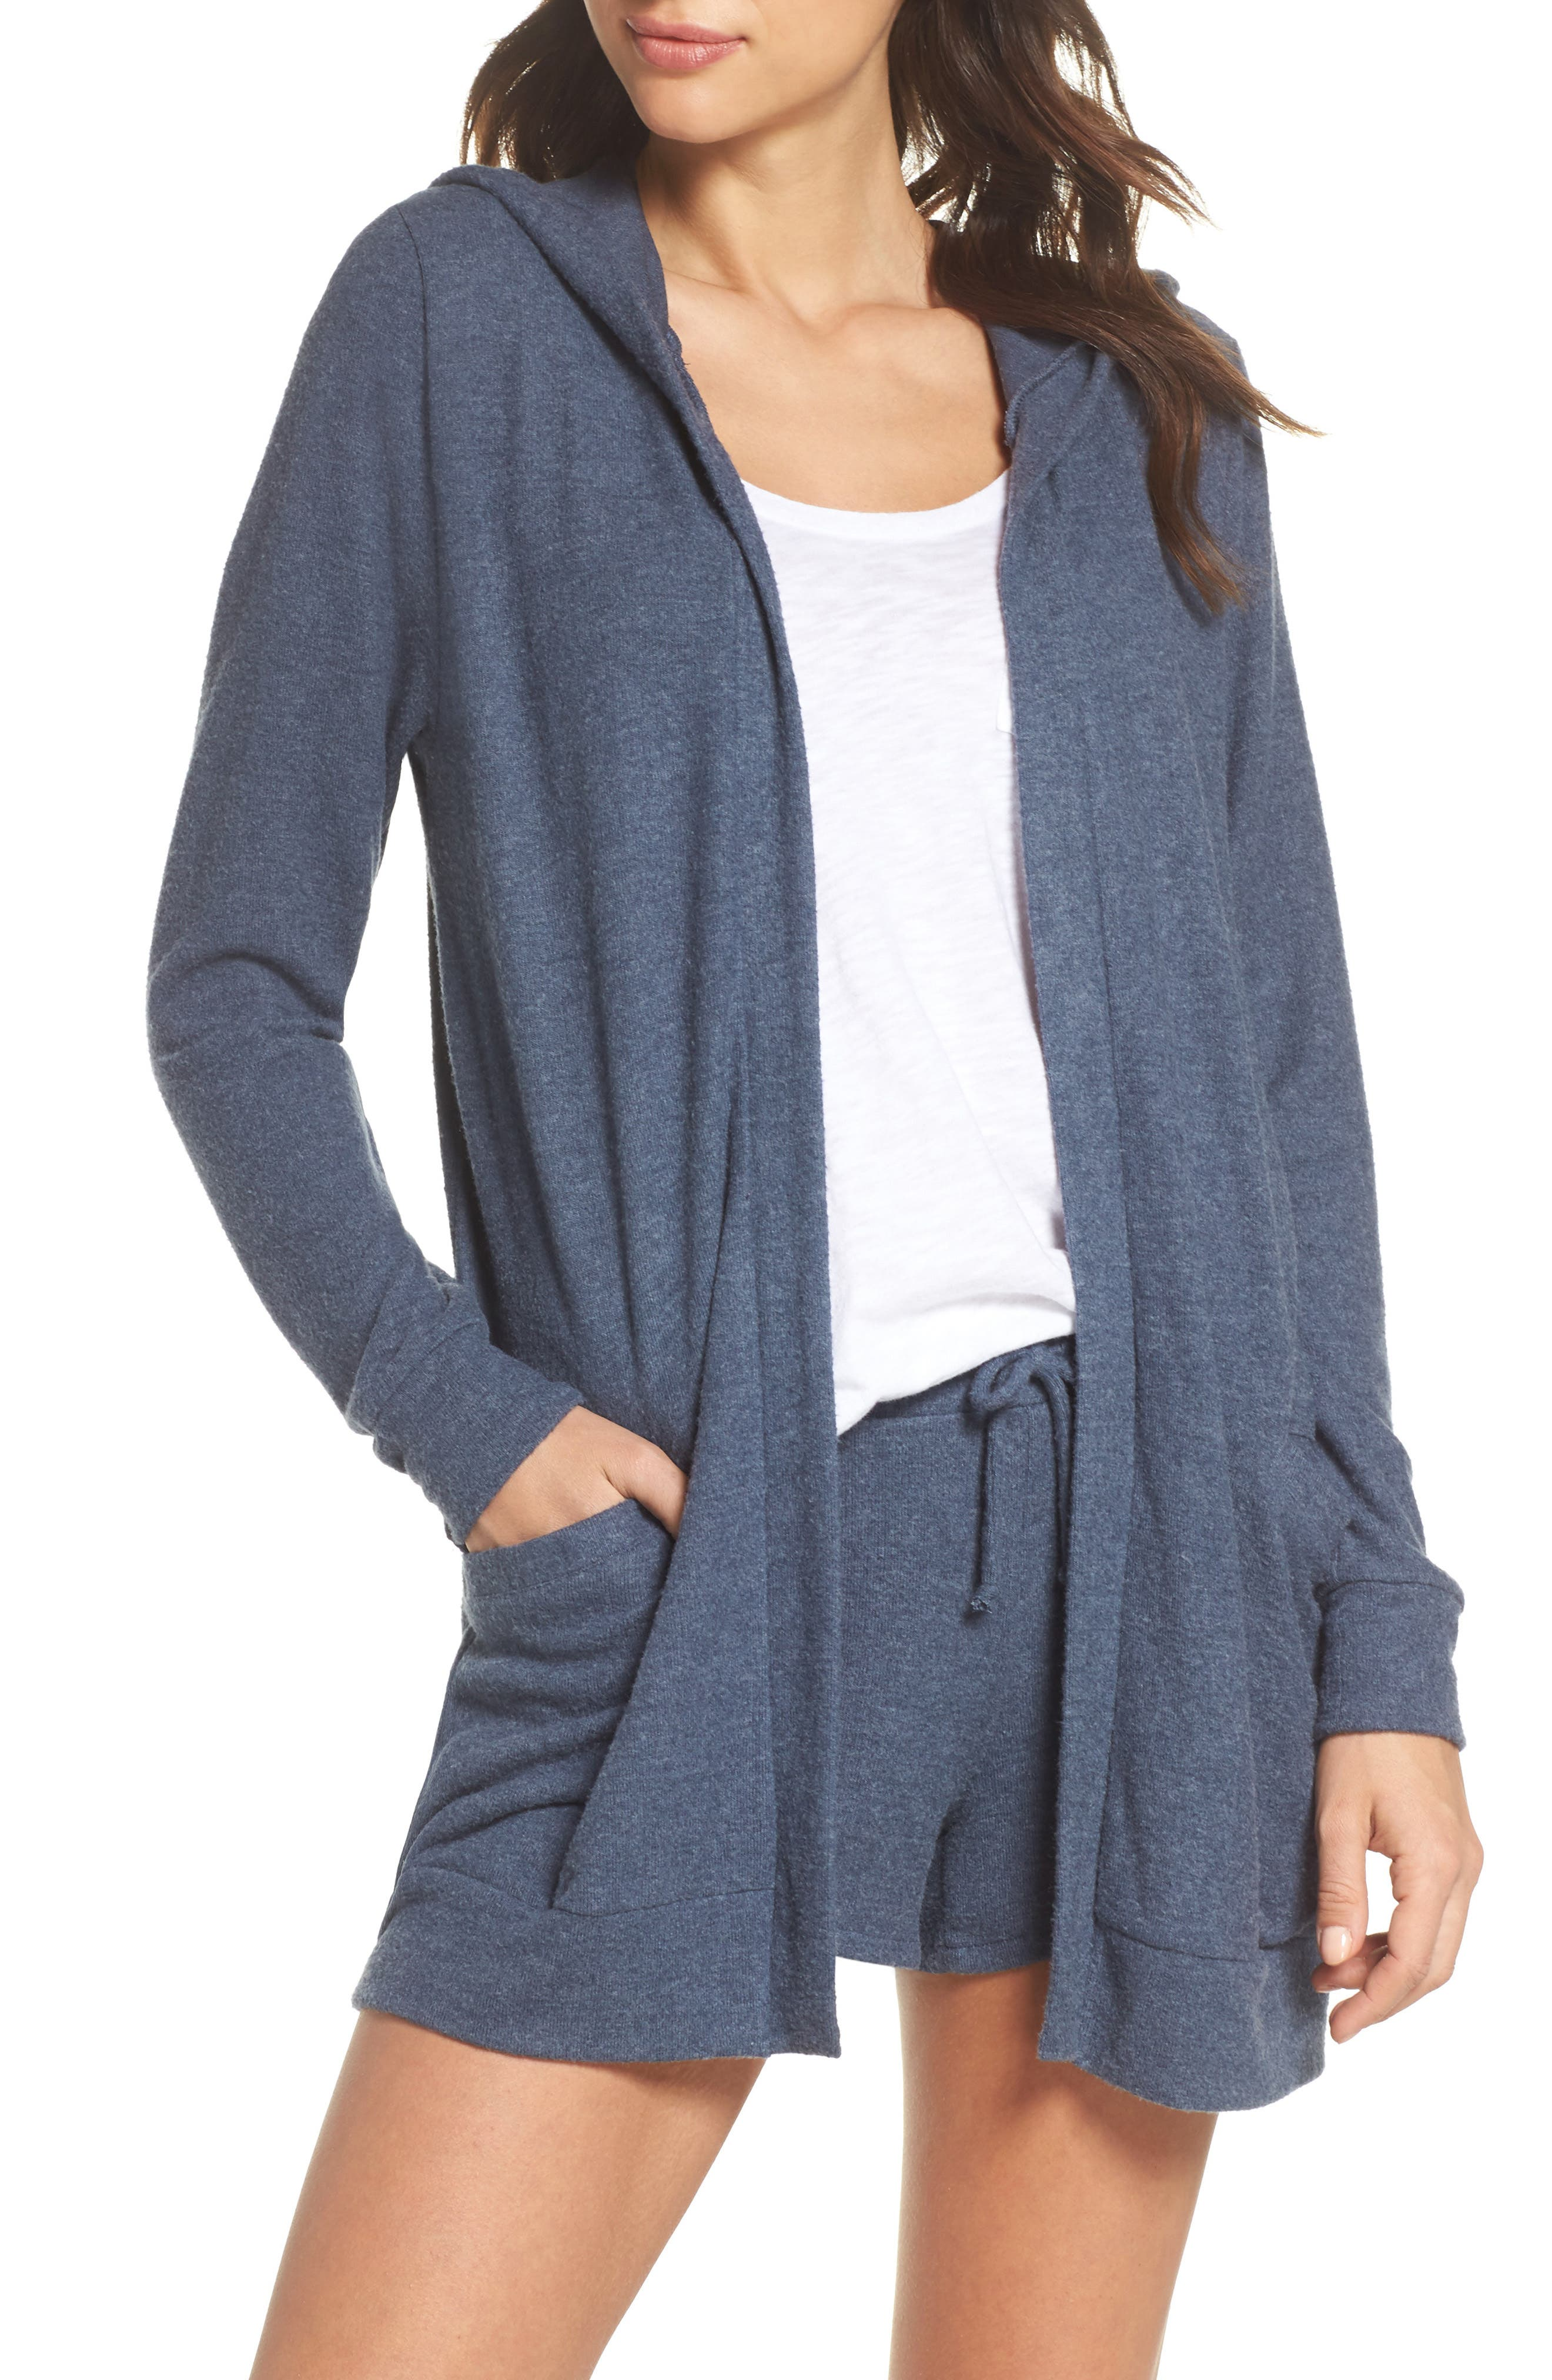 Chaser Love Lace-Up Hooded Cardigan